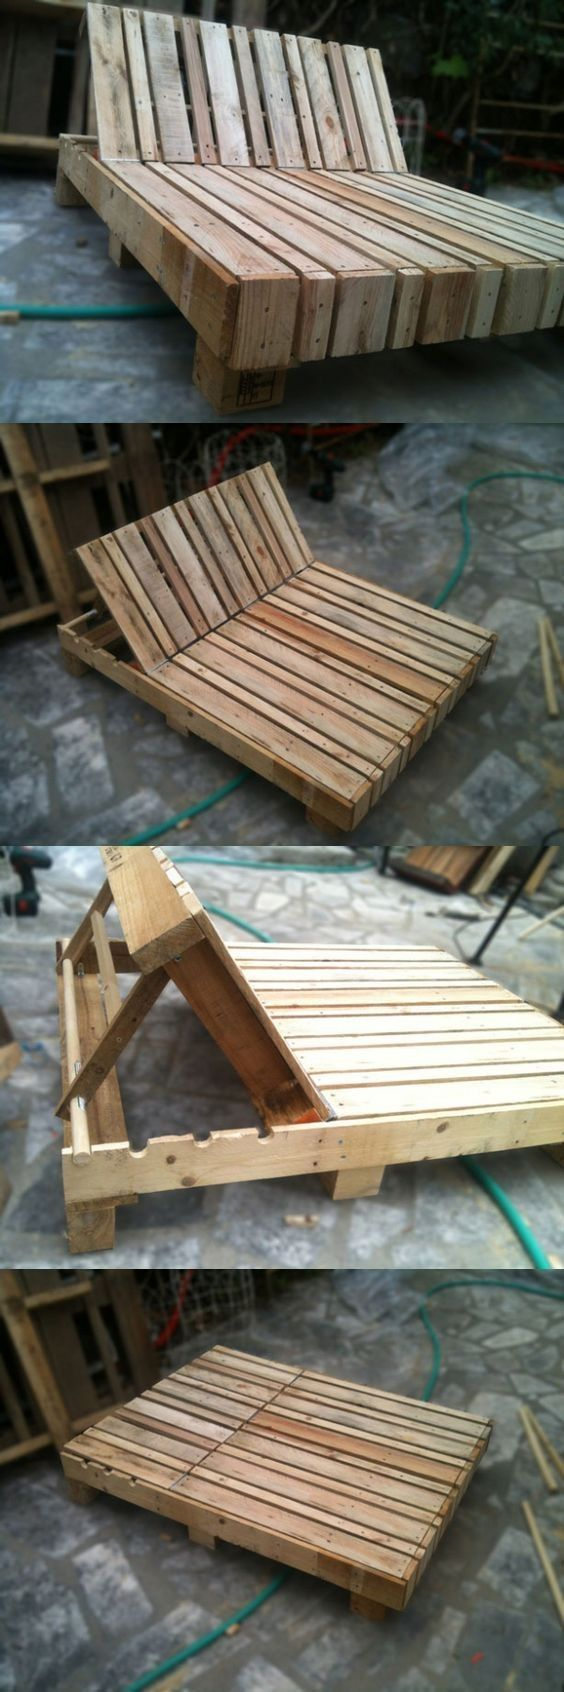 Pallet Double Lounge Chair